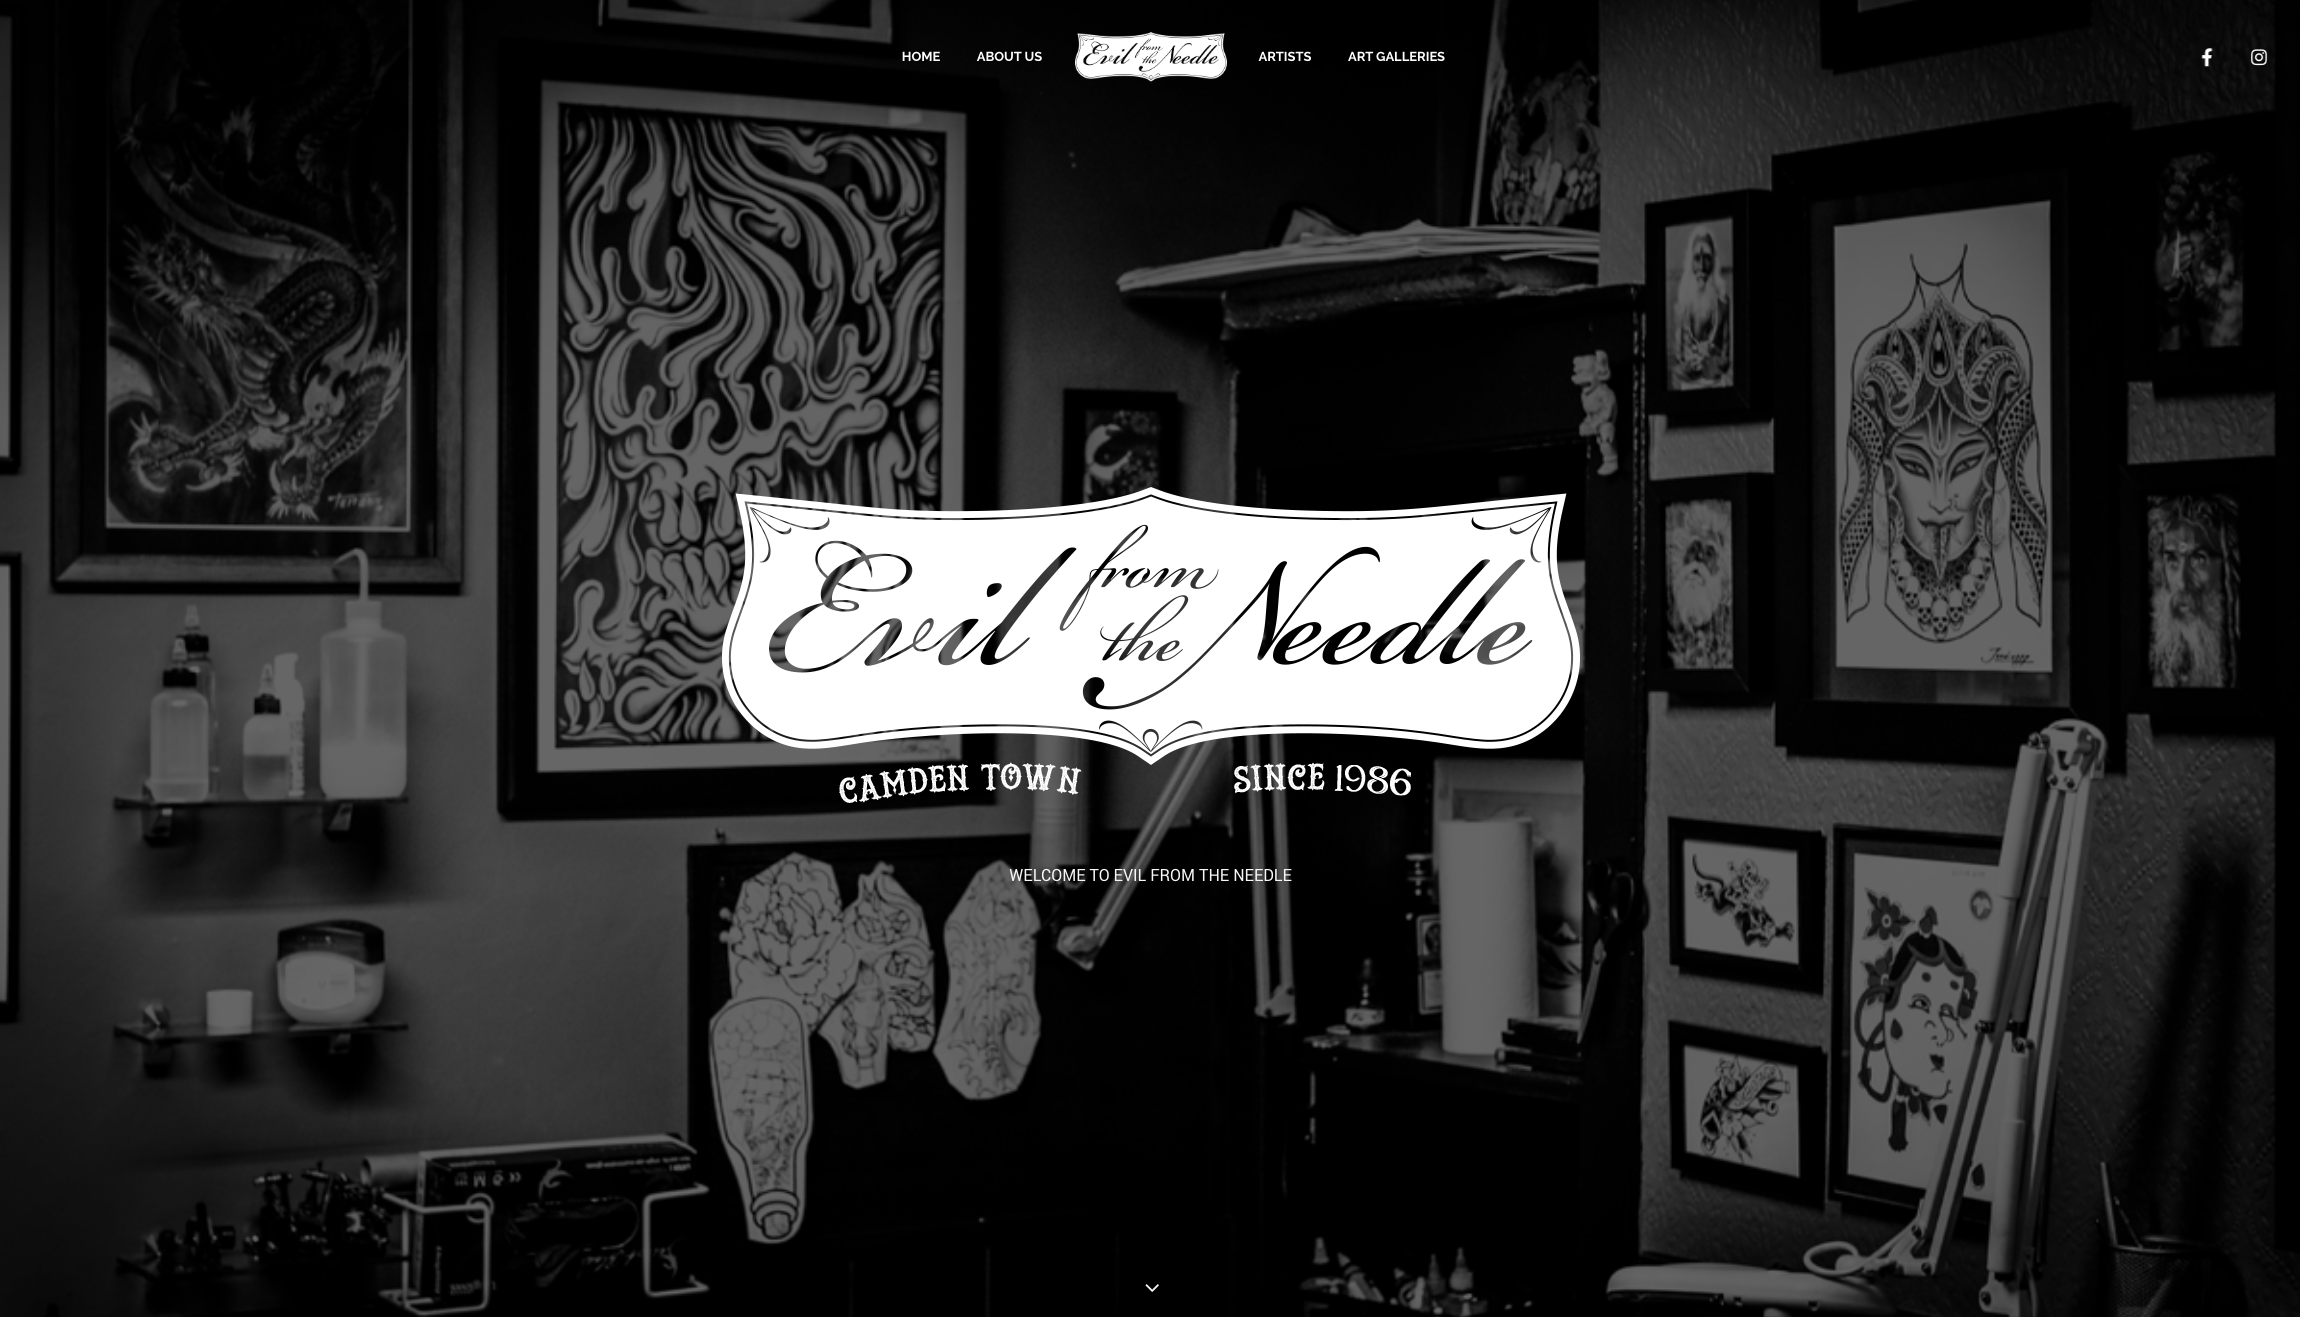 Evil From The Needle website